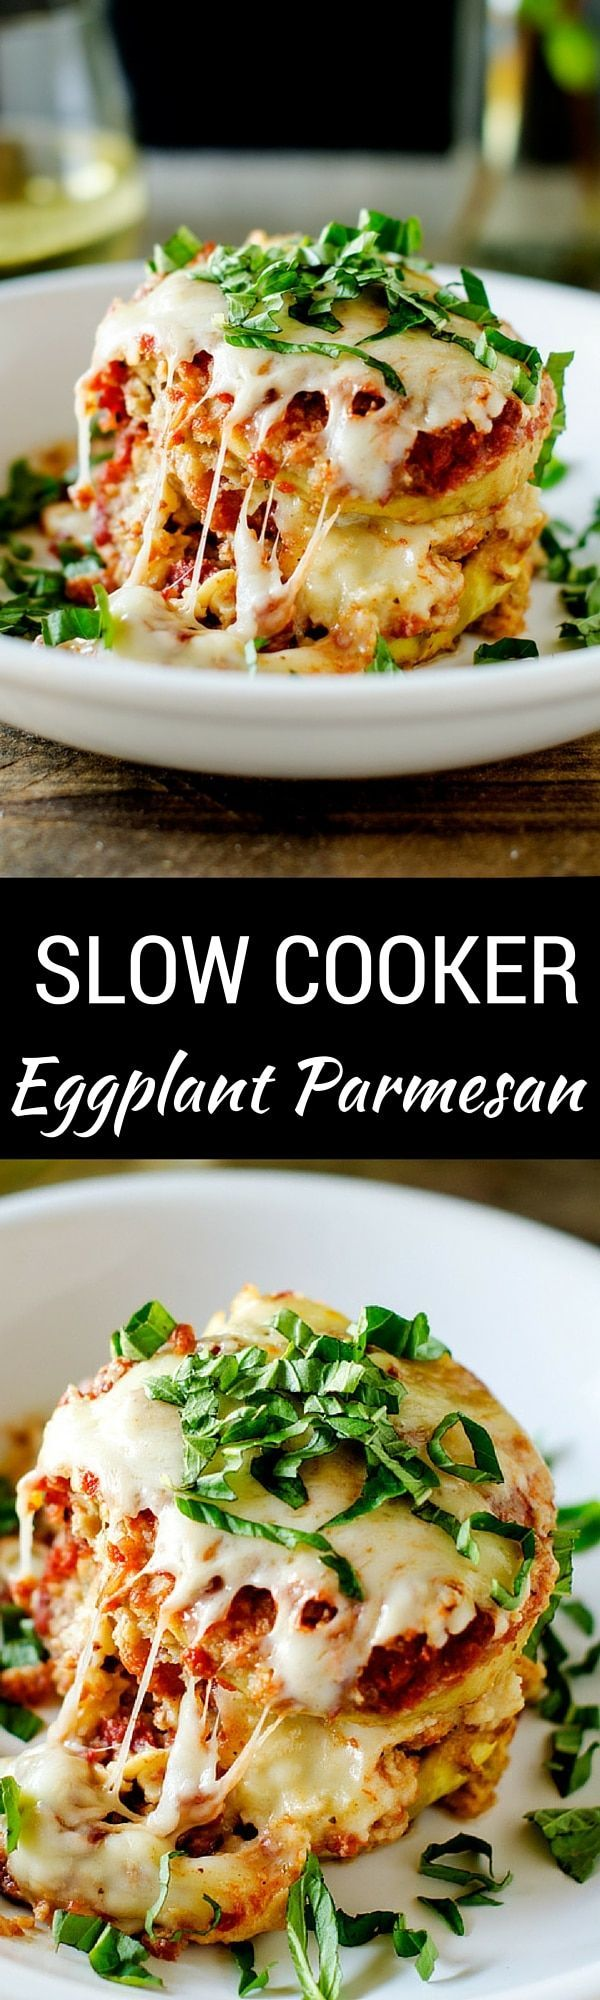 This Slow Cooker Eggplant Parmesan recipes is so delish!  You won't believe how easy it is to make this gluten free recipe in your crock pot! #glutenfree #crockpot #slowcooker